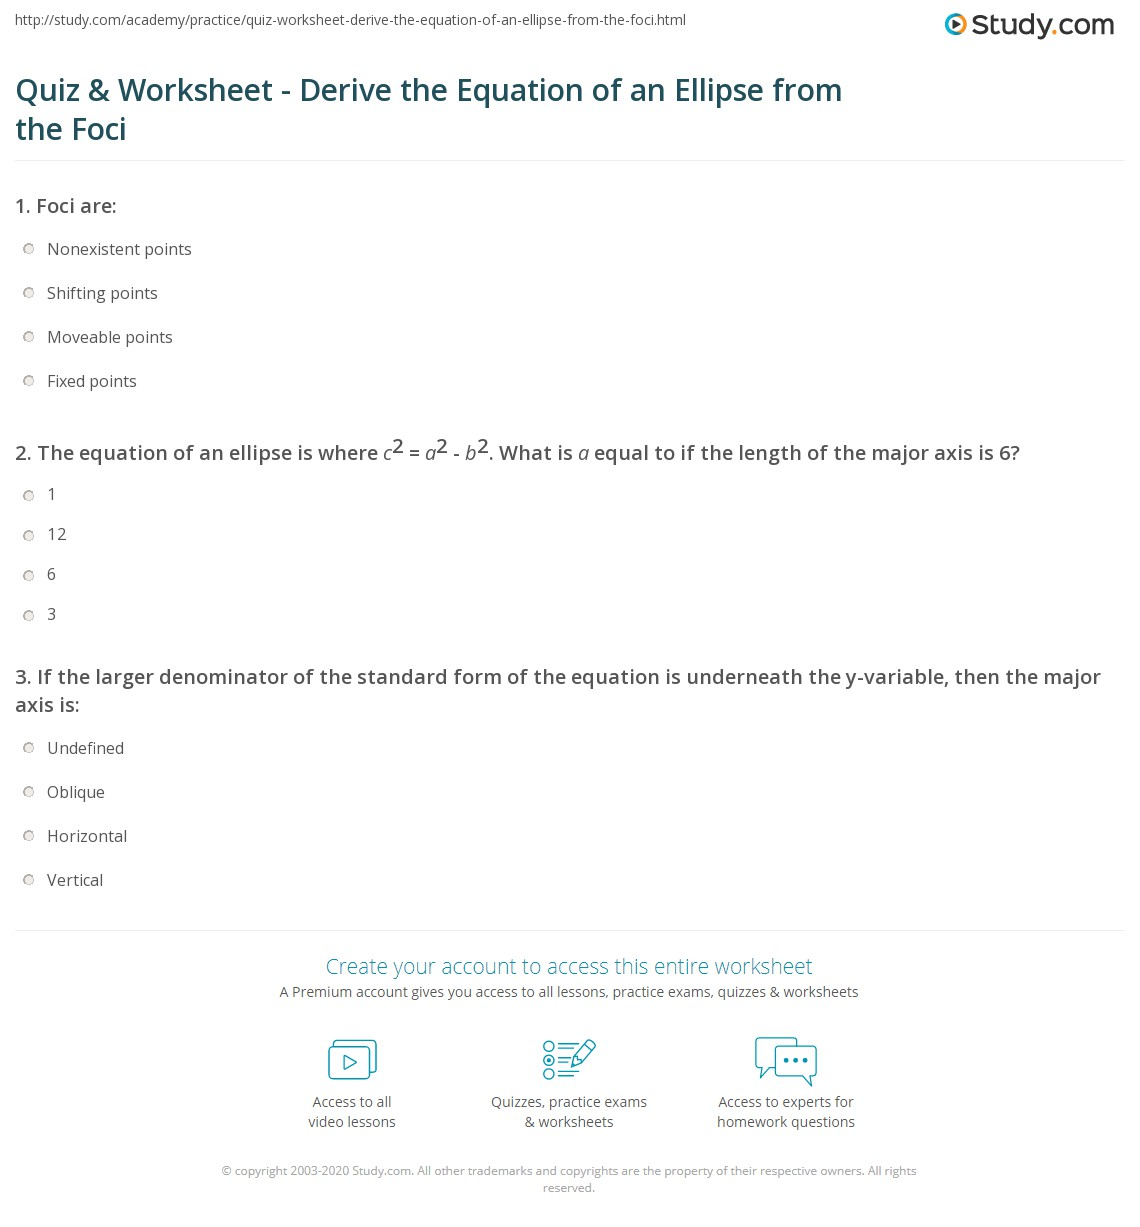 worksheet Ellipses Worksheet ellipse worksheet the best and most comprehensive worksheets print derive equation of an from foci worksheet